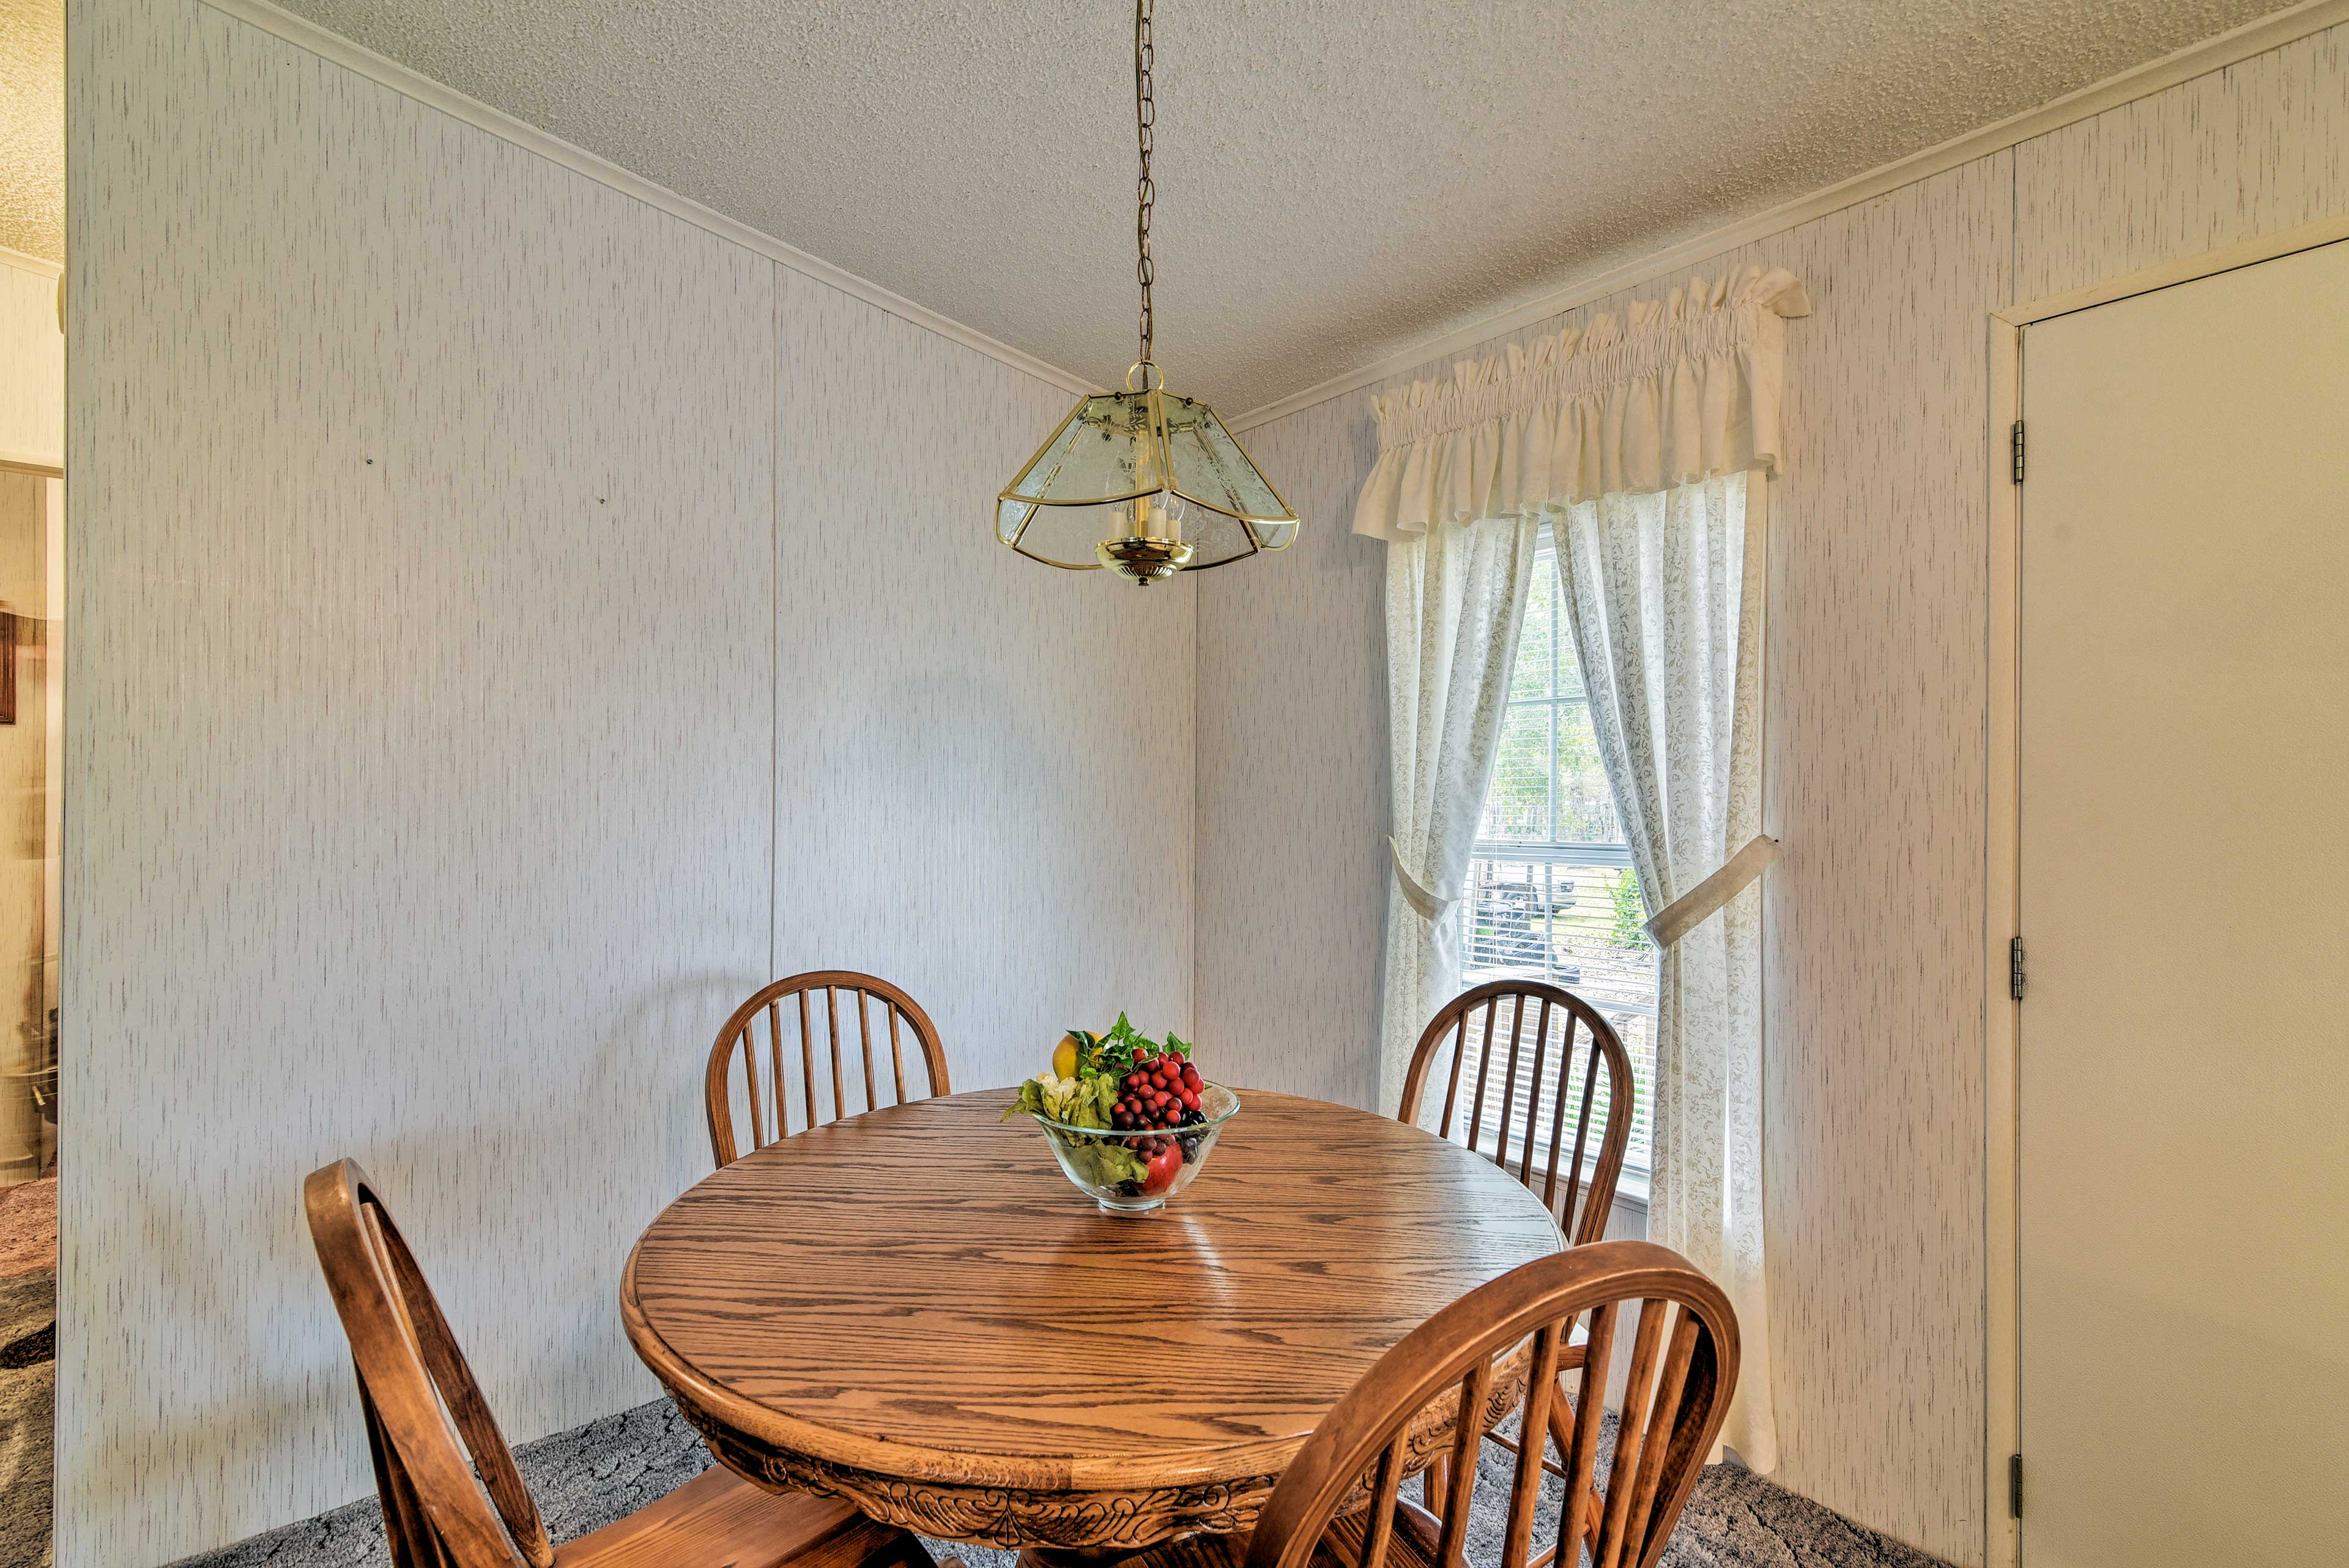 Sit down and enjoy the company of family around this breakfast table.